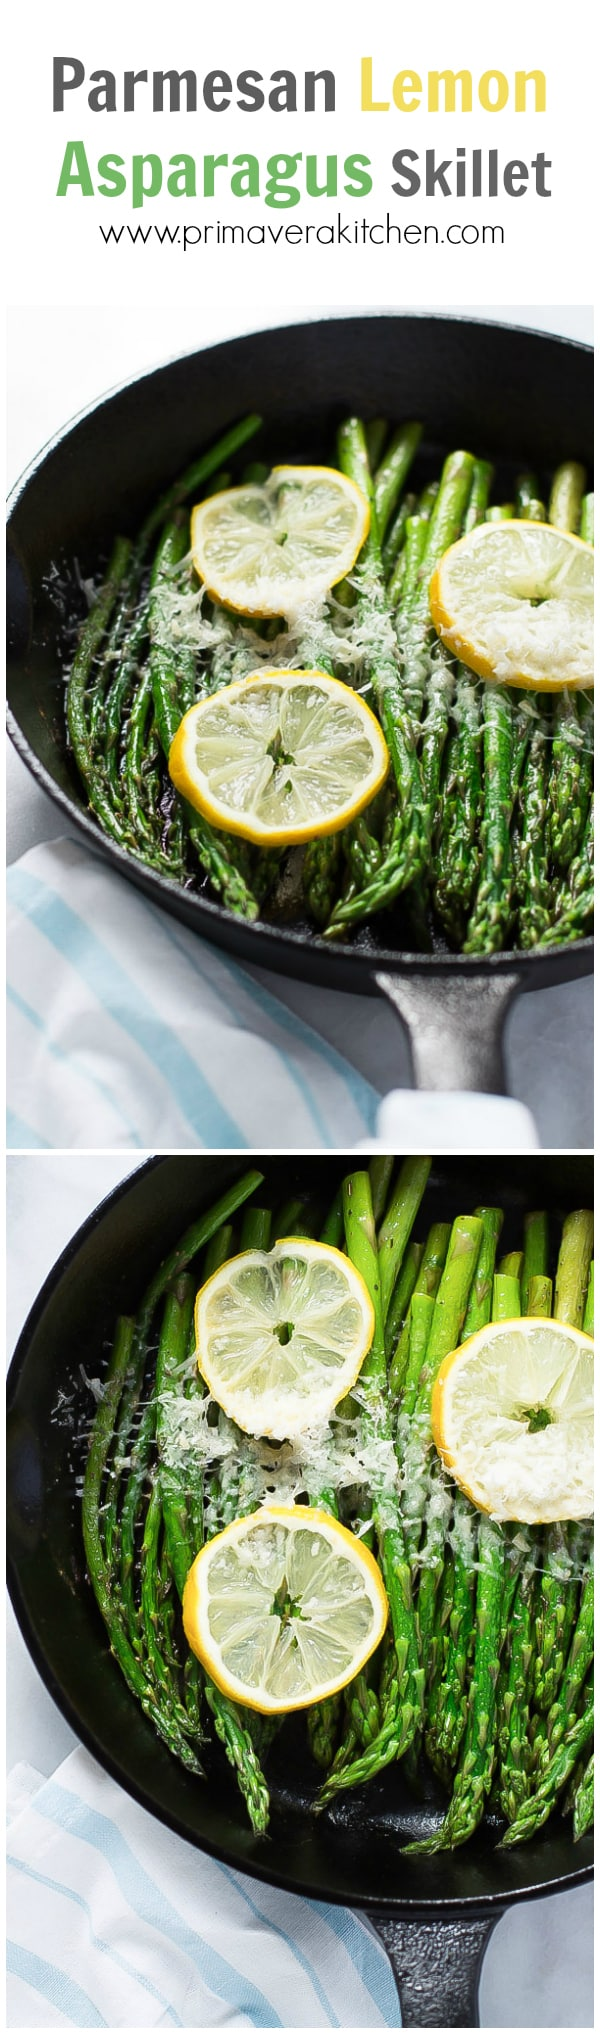 Parmesan Lemon Asparagus Skillet - Enjoy this quick and easy Parmesan Lemon Asparagus Skillet recipe as a healthy side dish during your busy weeknights. This is loaded with Parmesan, garlic, lemon juice, dried oregano and Italian seasoning.